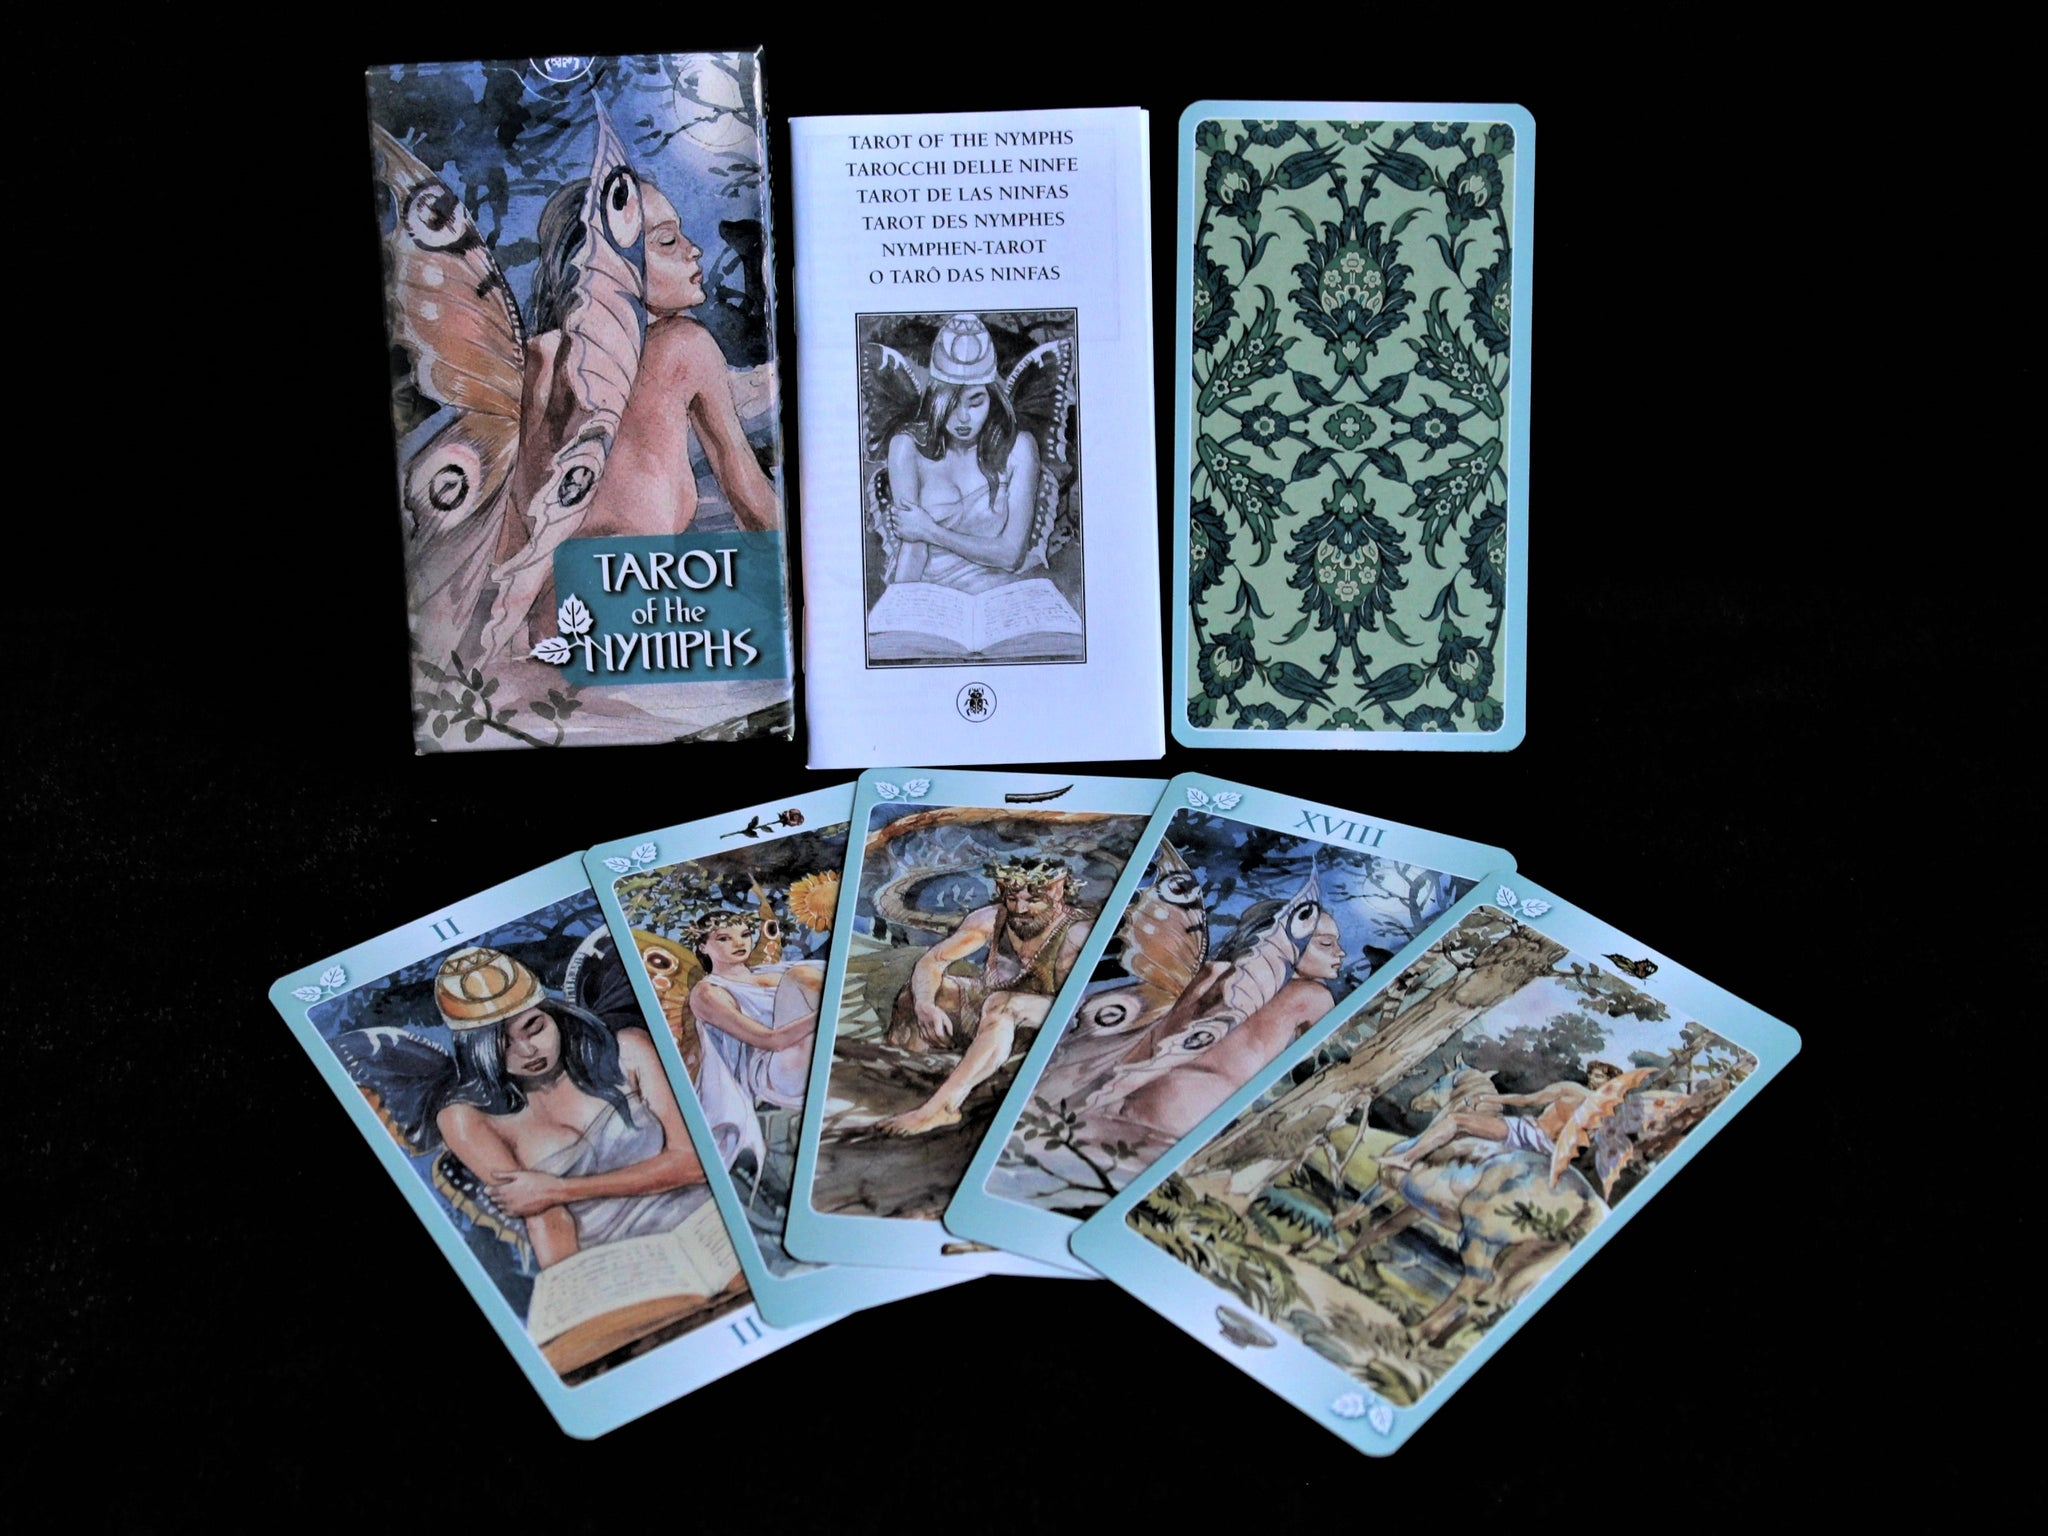 Le Tarot des Nymphes